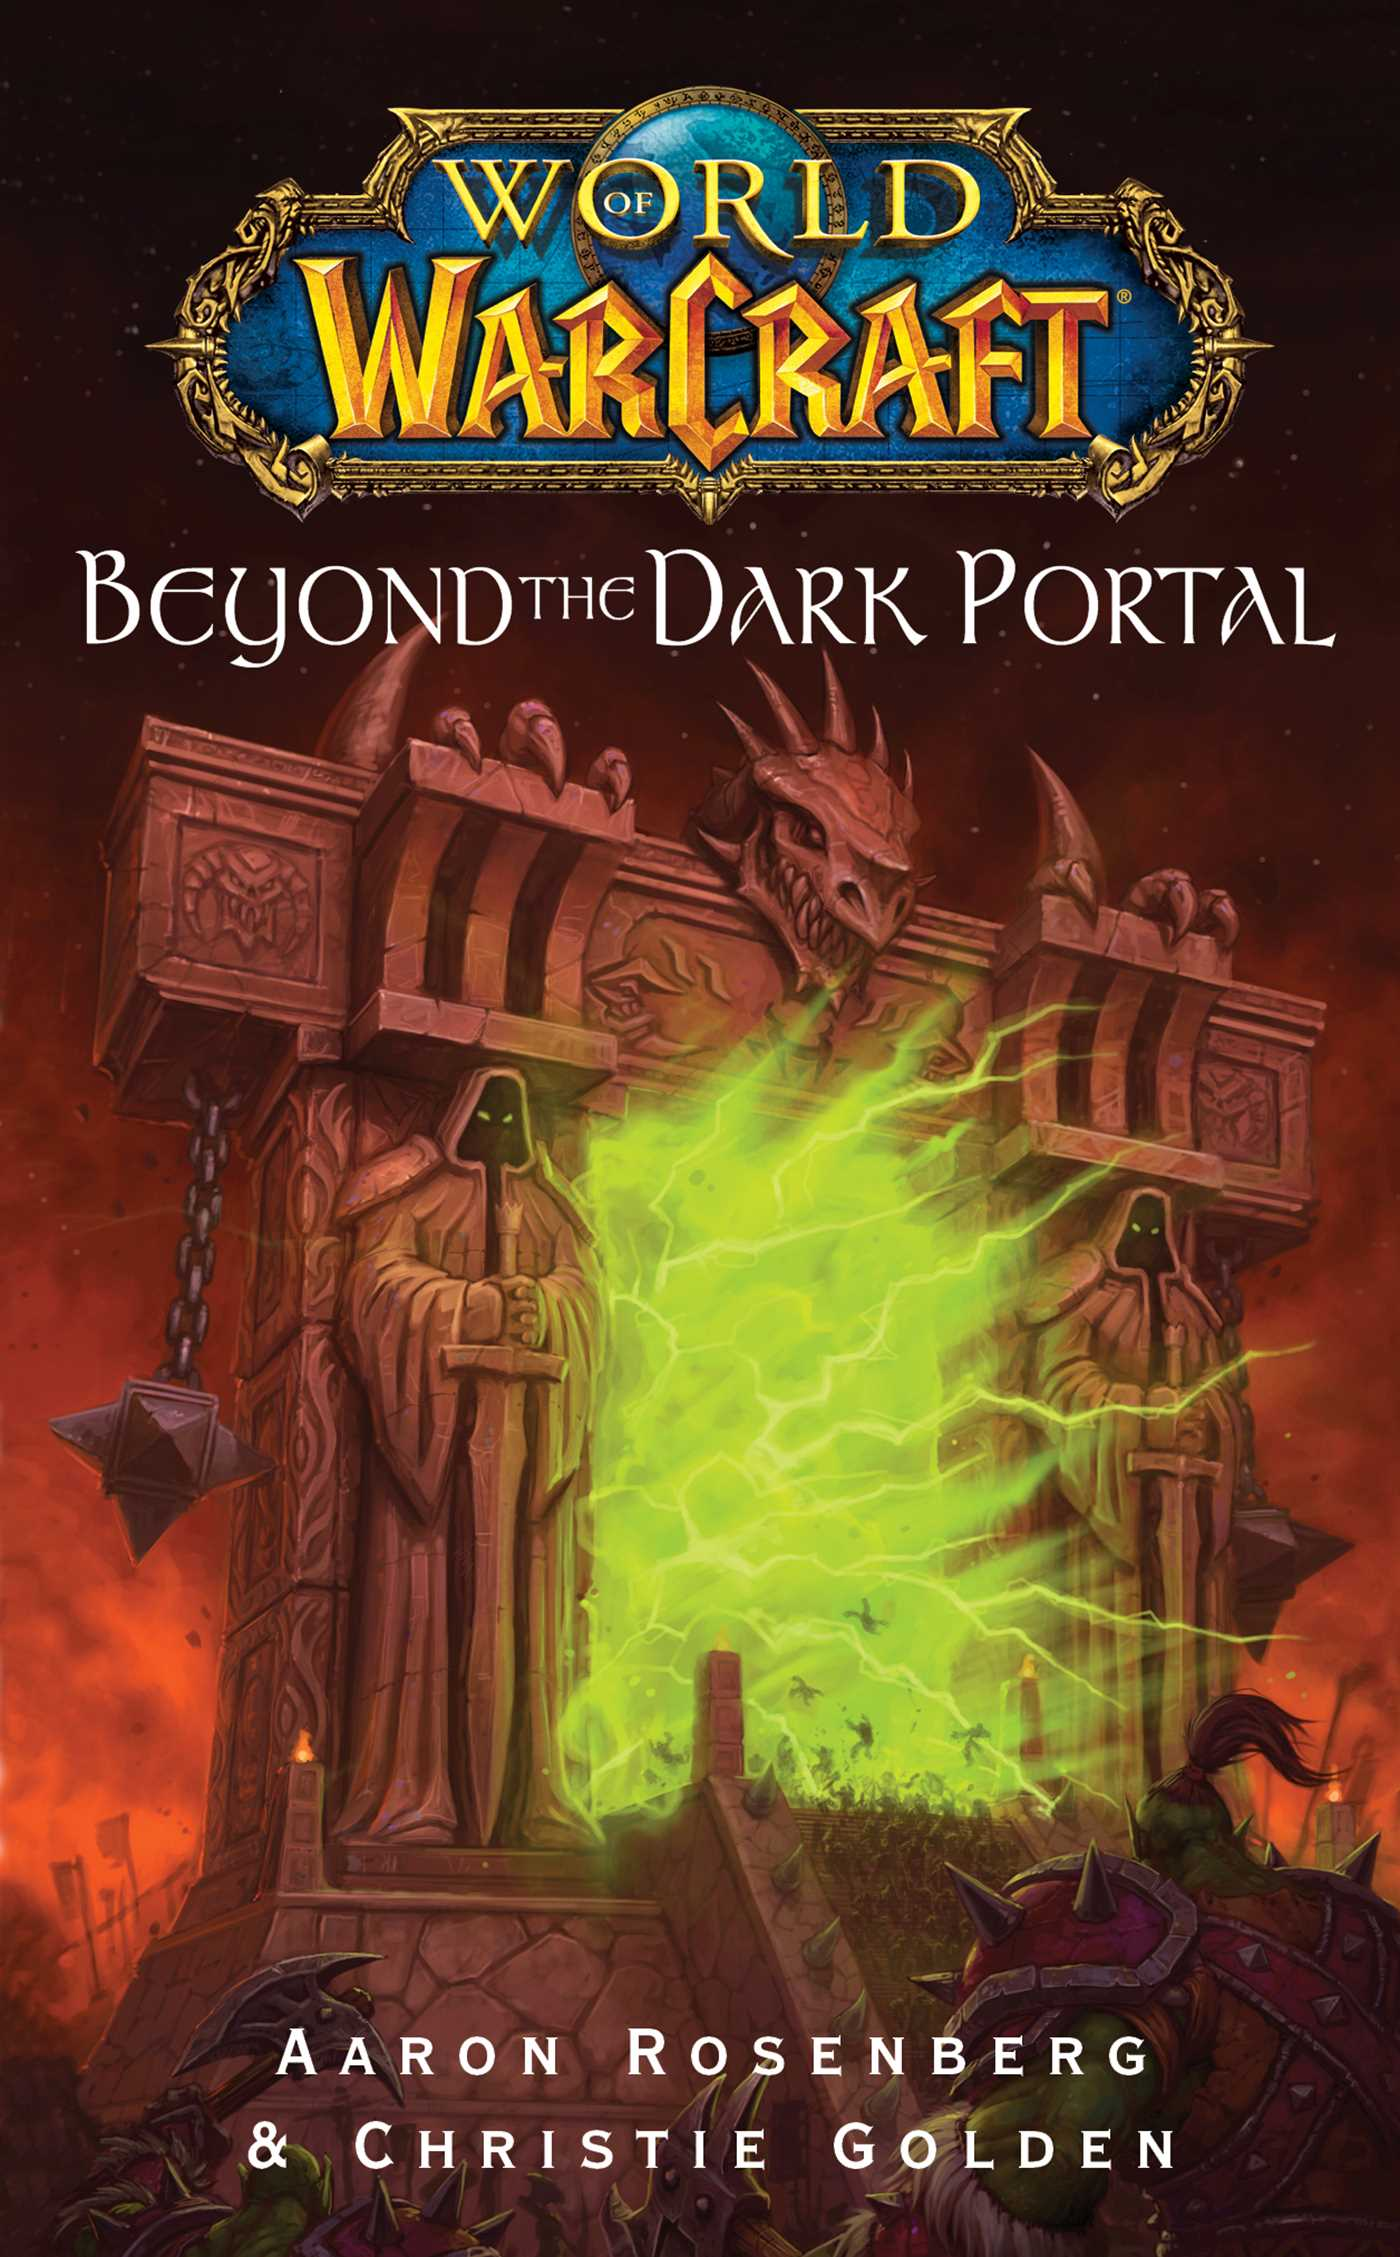 World-of-warcraft-beyond-the-dark-portal-9781416550860_hr